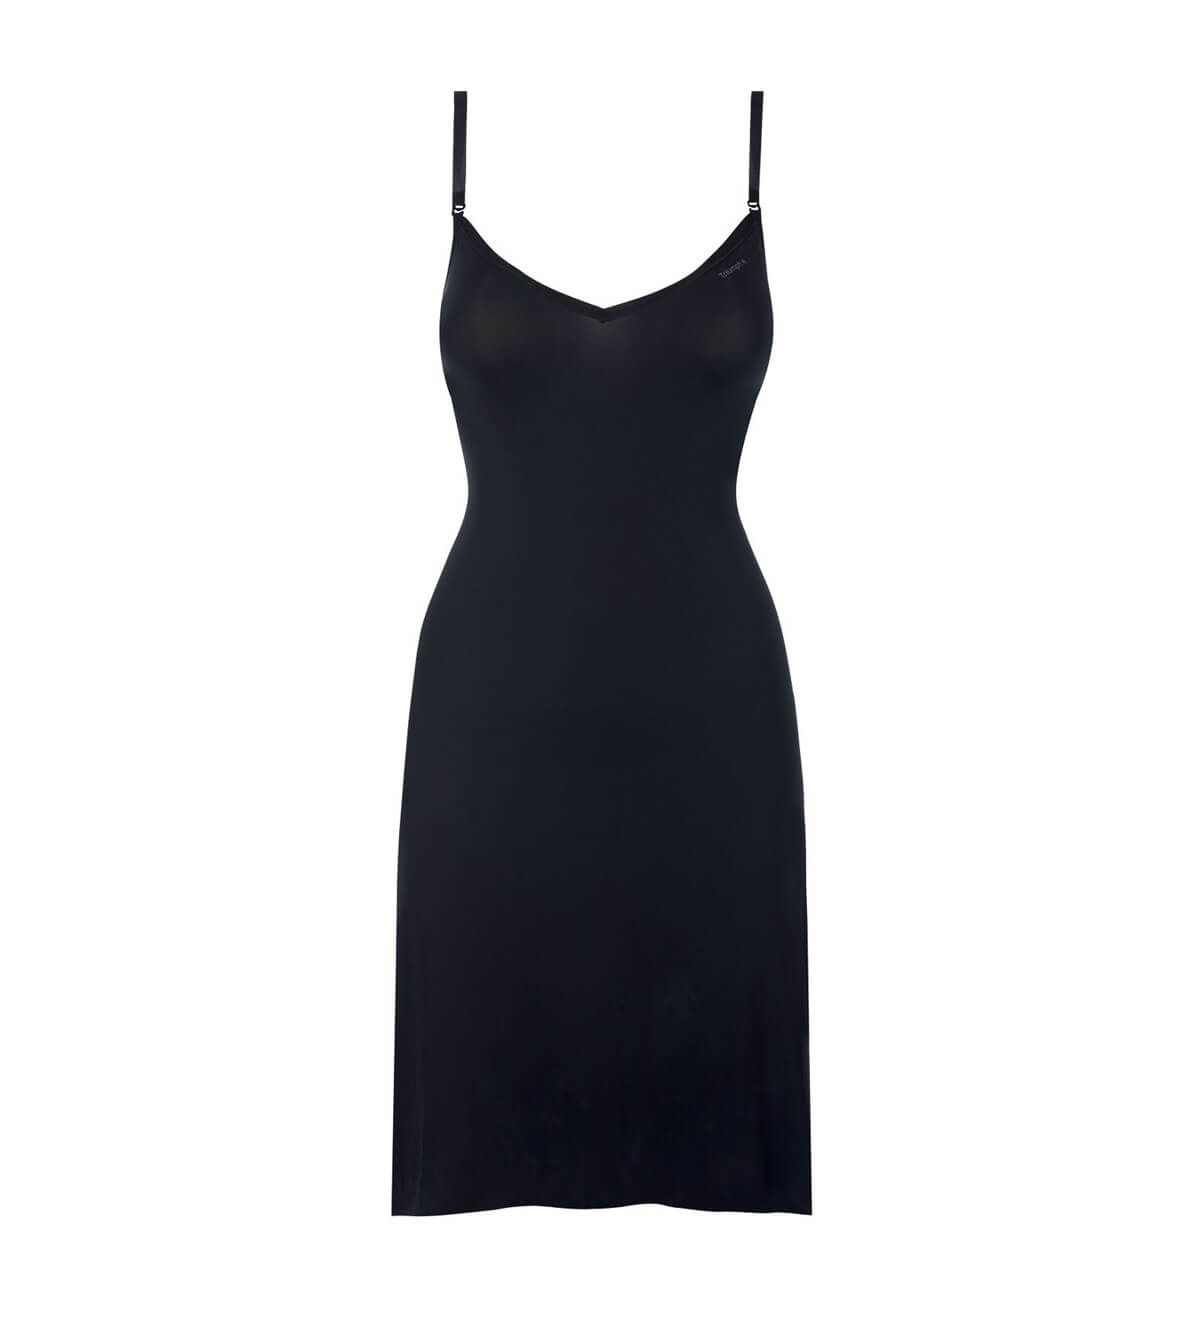 Triumph Homewear Body Make-Up Dress 01 10133684